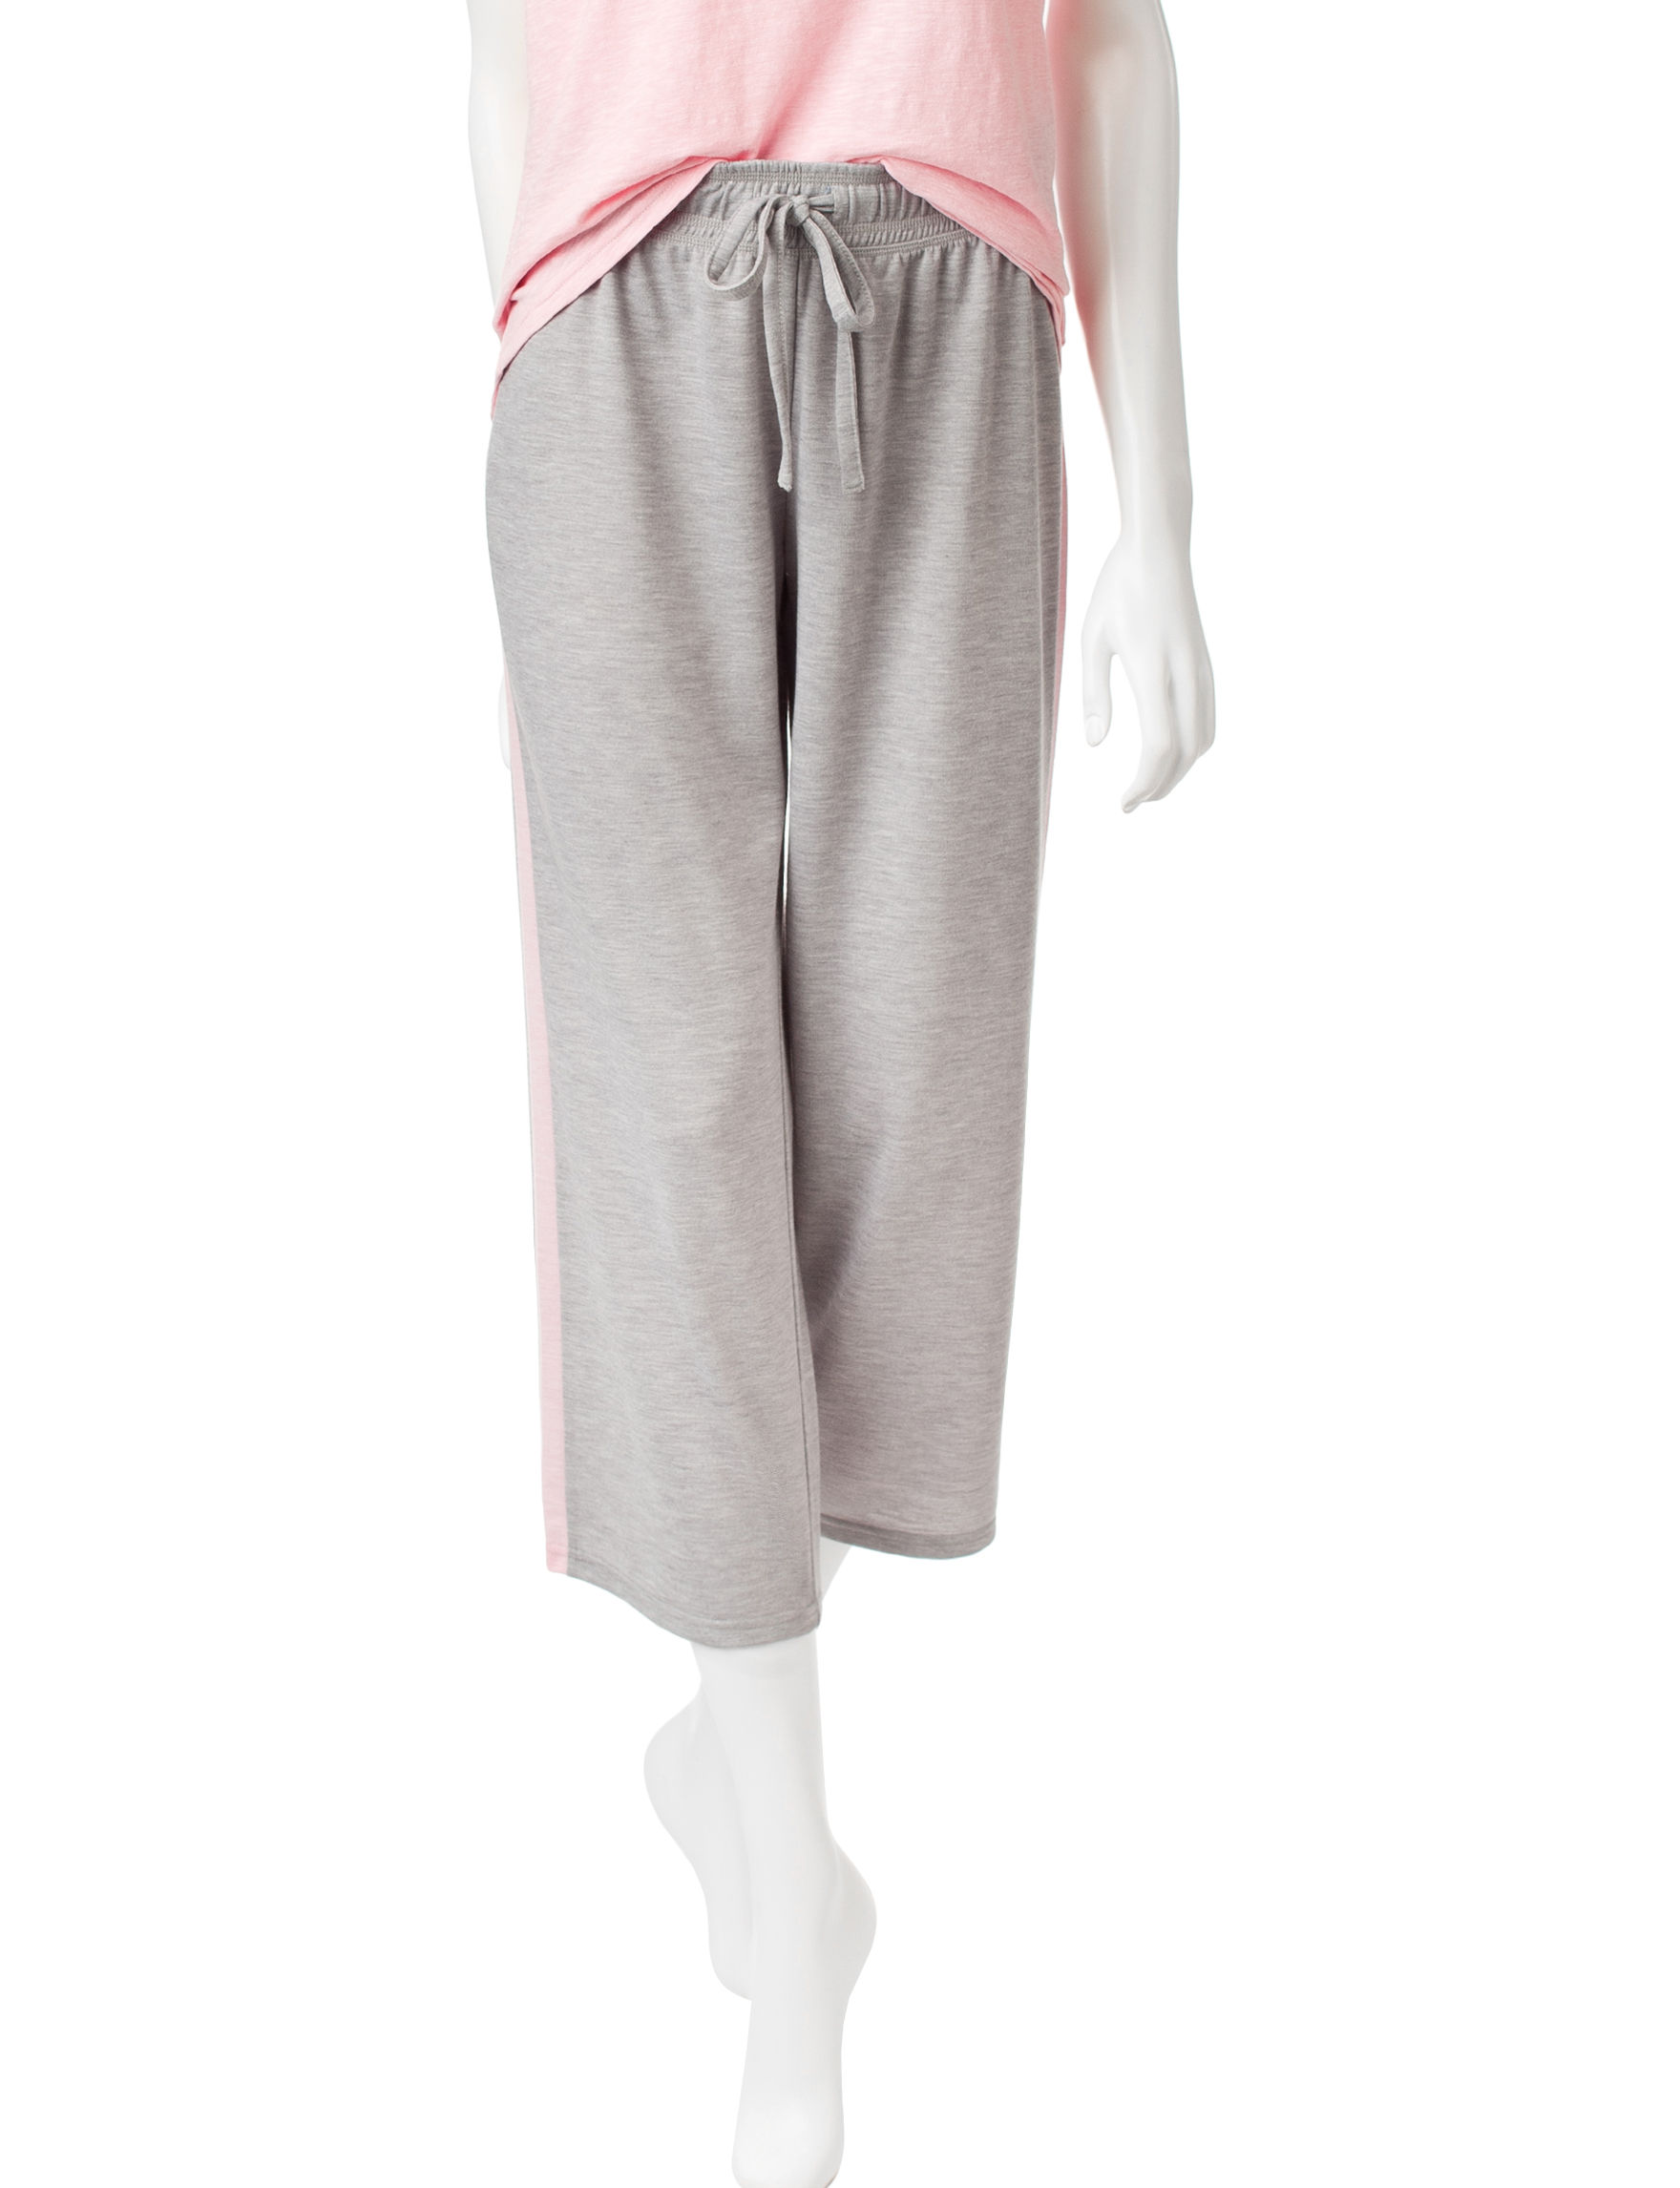 Goodnight Kiss Grey Pajama Bottoms